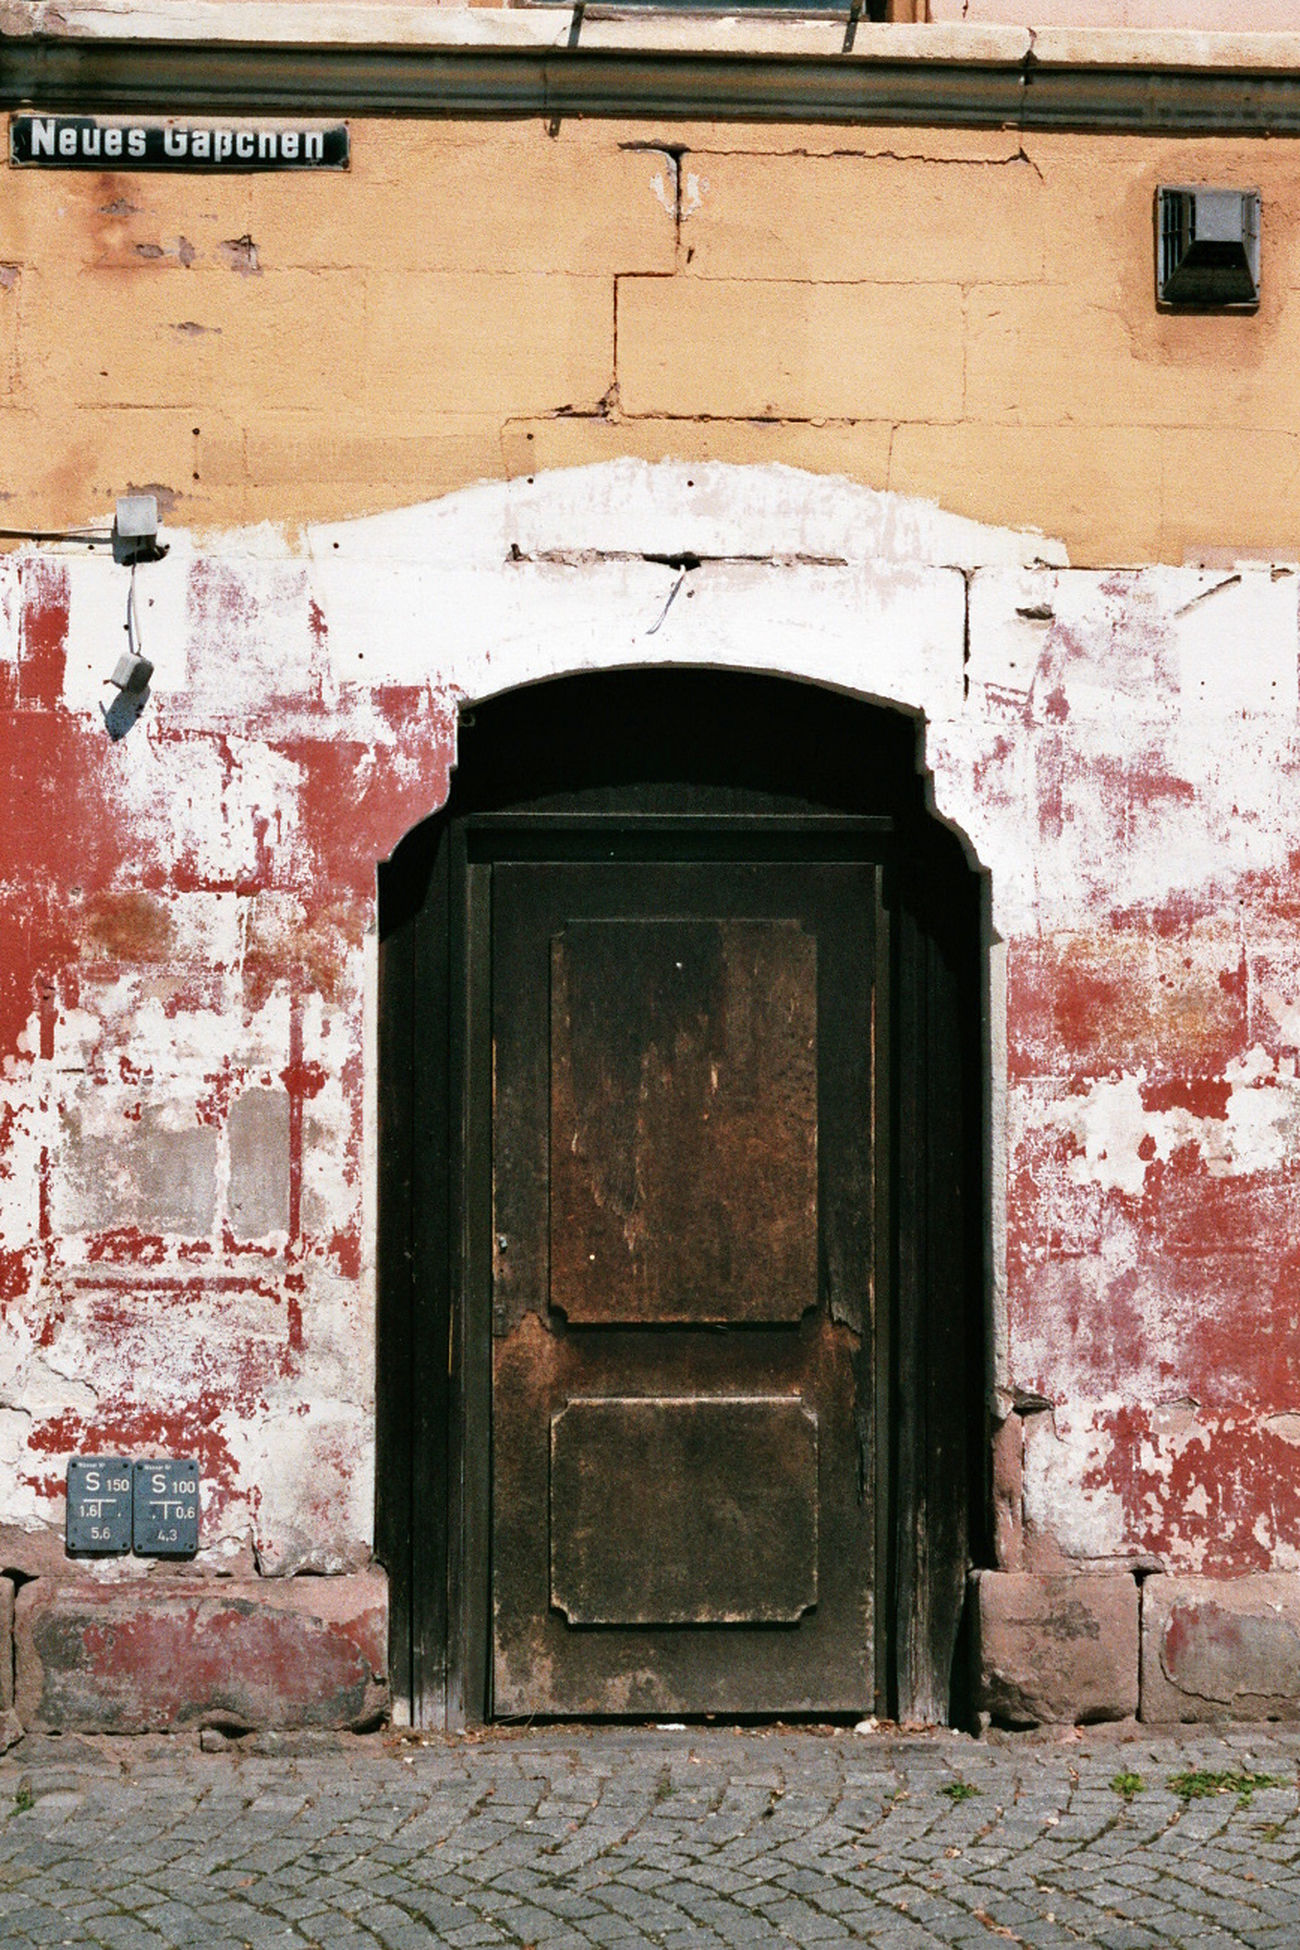 Another test shot. Canon AE1 Door Built Structure Architecture Closed Wall - Building Feature House Weathered Outdoors Red No People Canonae1 Check This Out Taking Photos Hanging Out Creativity Analogphotography 35mm Film Analog Camera Analog Daylight Urban Urban Exploration